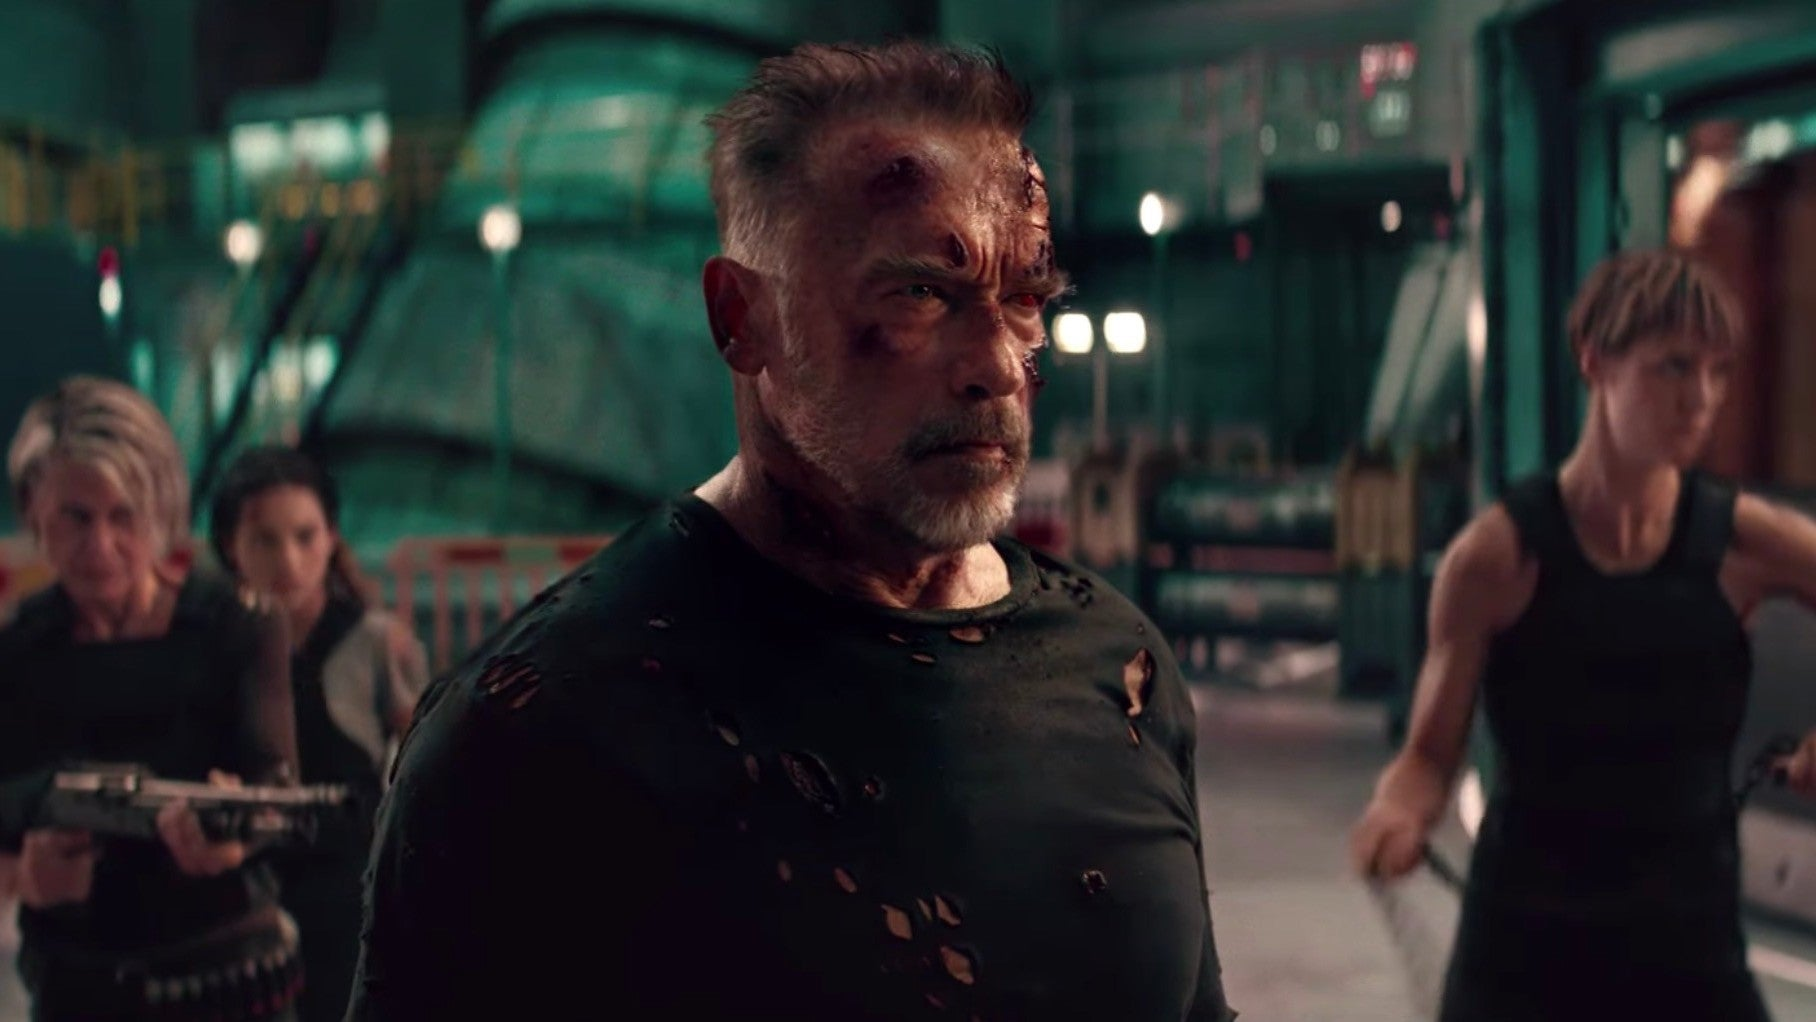 The New Terminator: Dark Fate Trailer Is All About Family